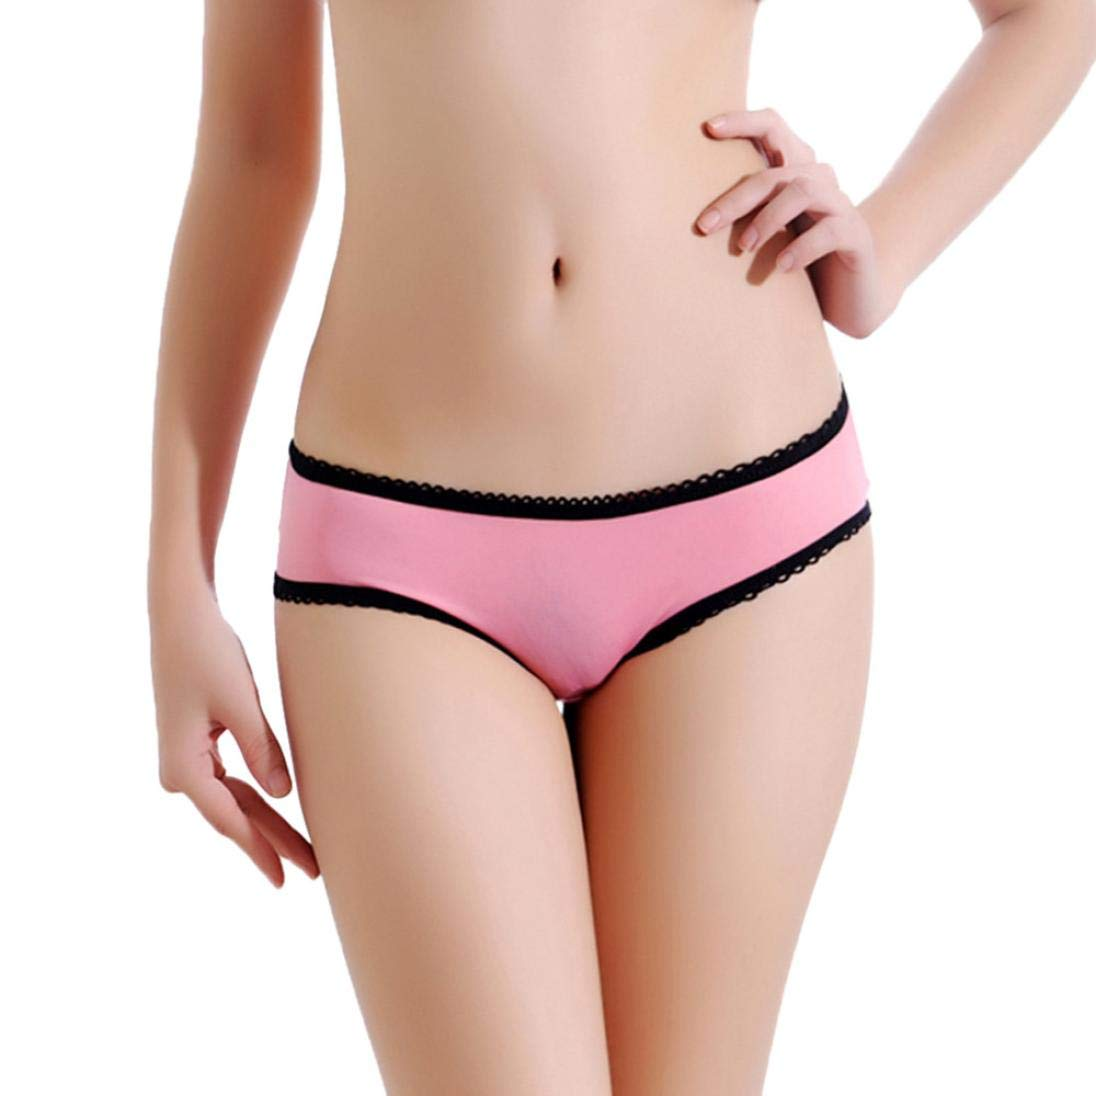 Sixcup Women Sexy Women s Open Crotch Cheeky Tong Panties Cut Out  Crotchless Hollow Bowknot Lace G-String Lingerie Underwear Seduction  Underpants Thong ... 79754e81a